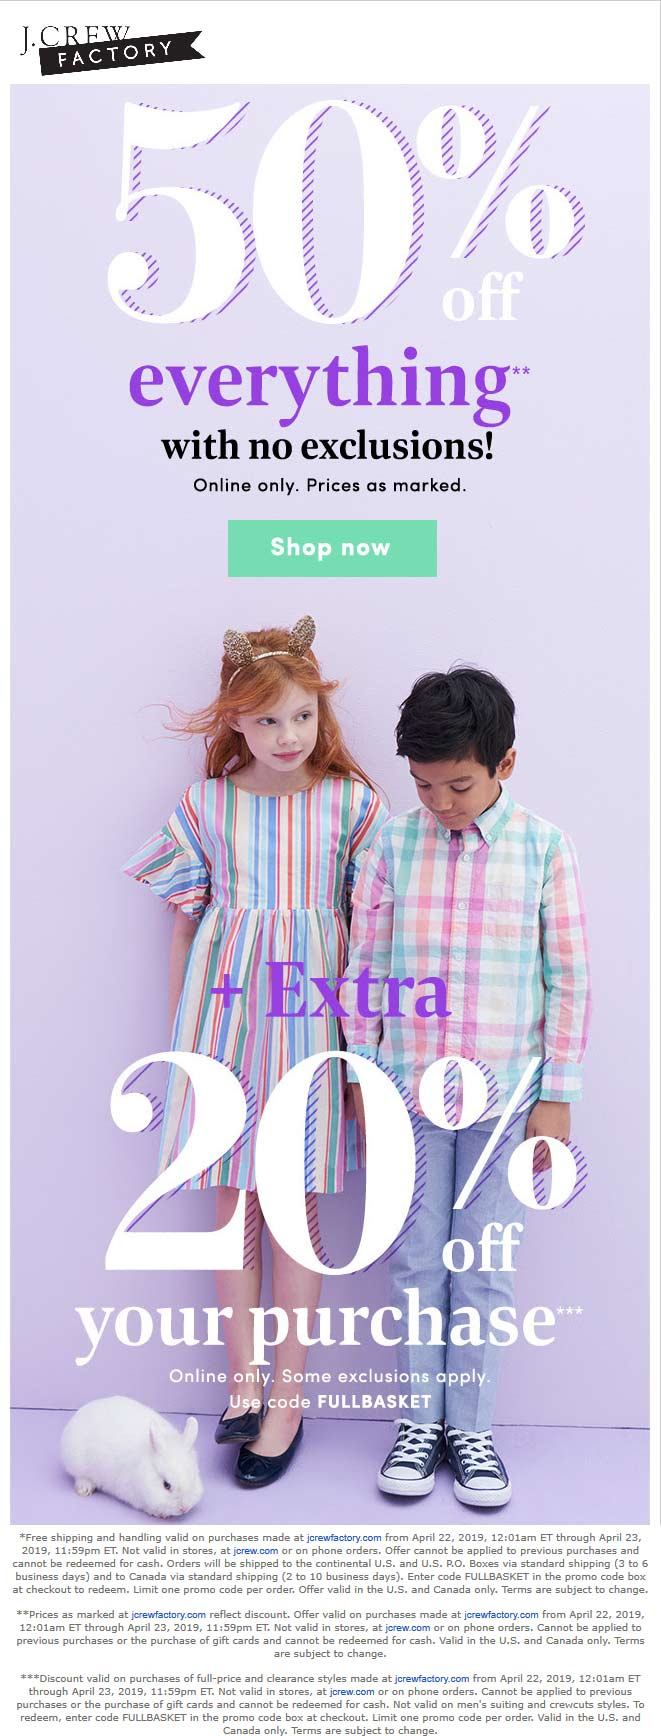 J.CrewFactory.com Promo Coupon 70% off everything online at J.Crew Factory via promo code FULLBASKET